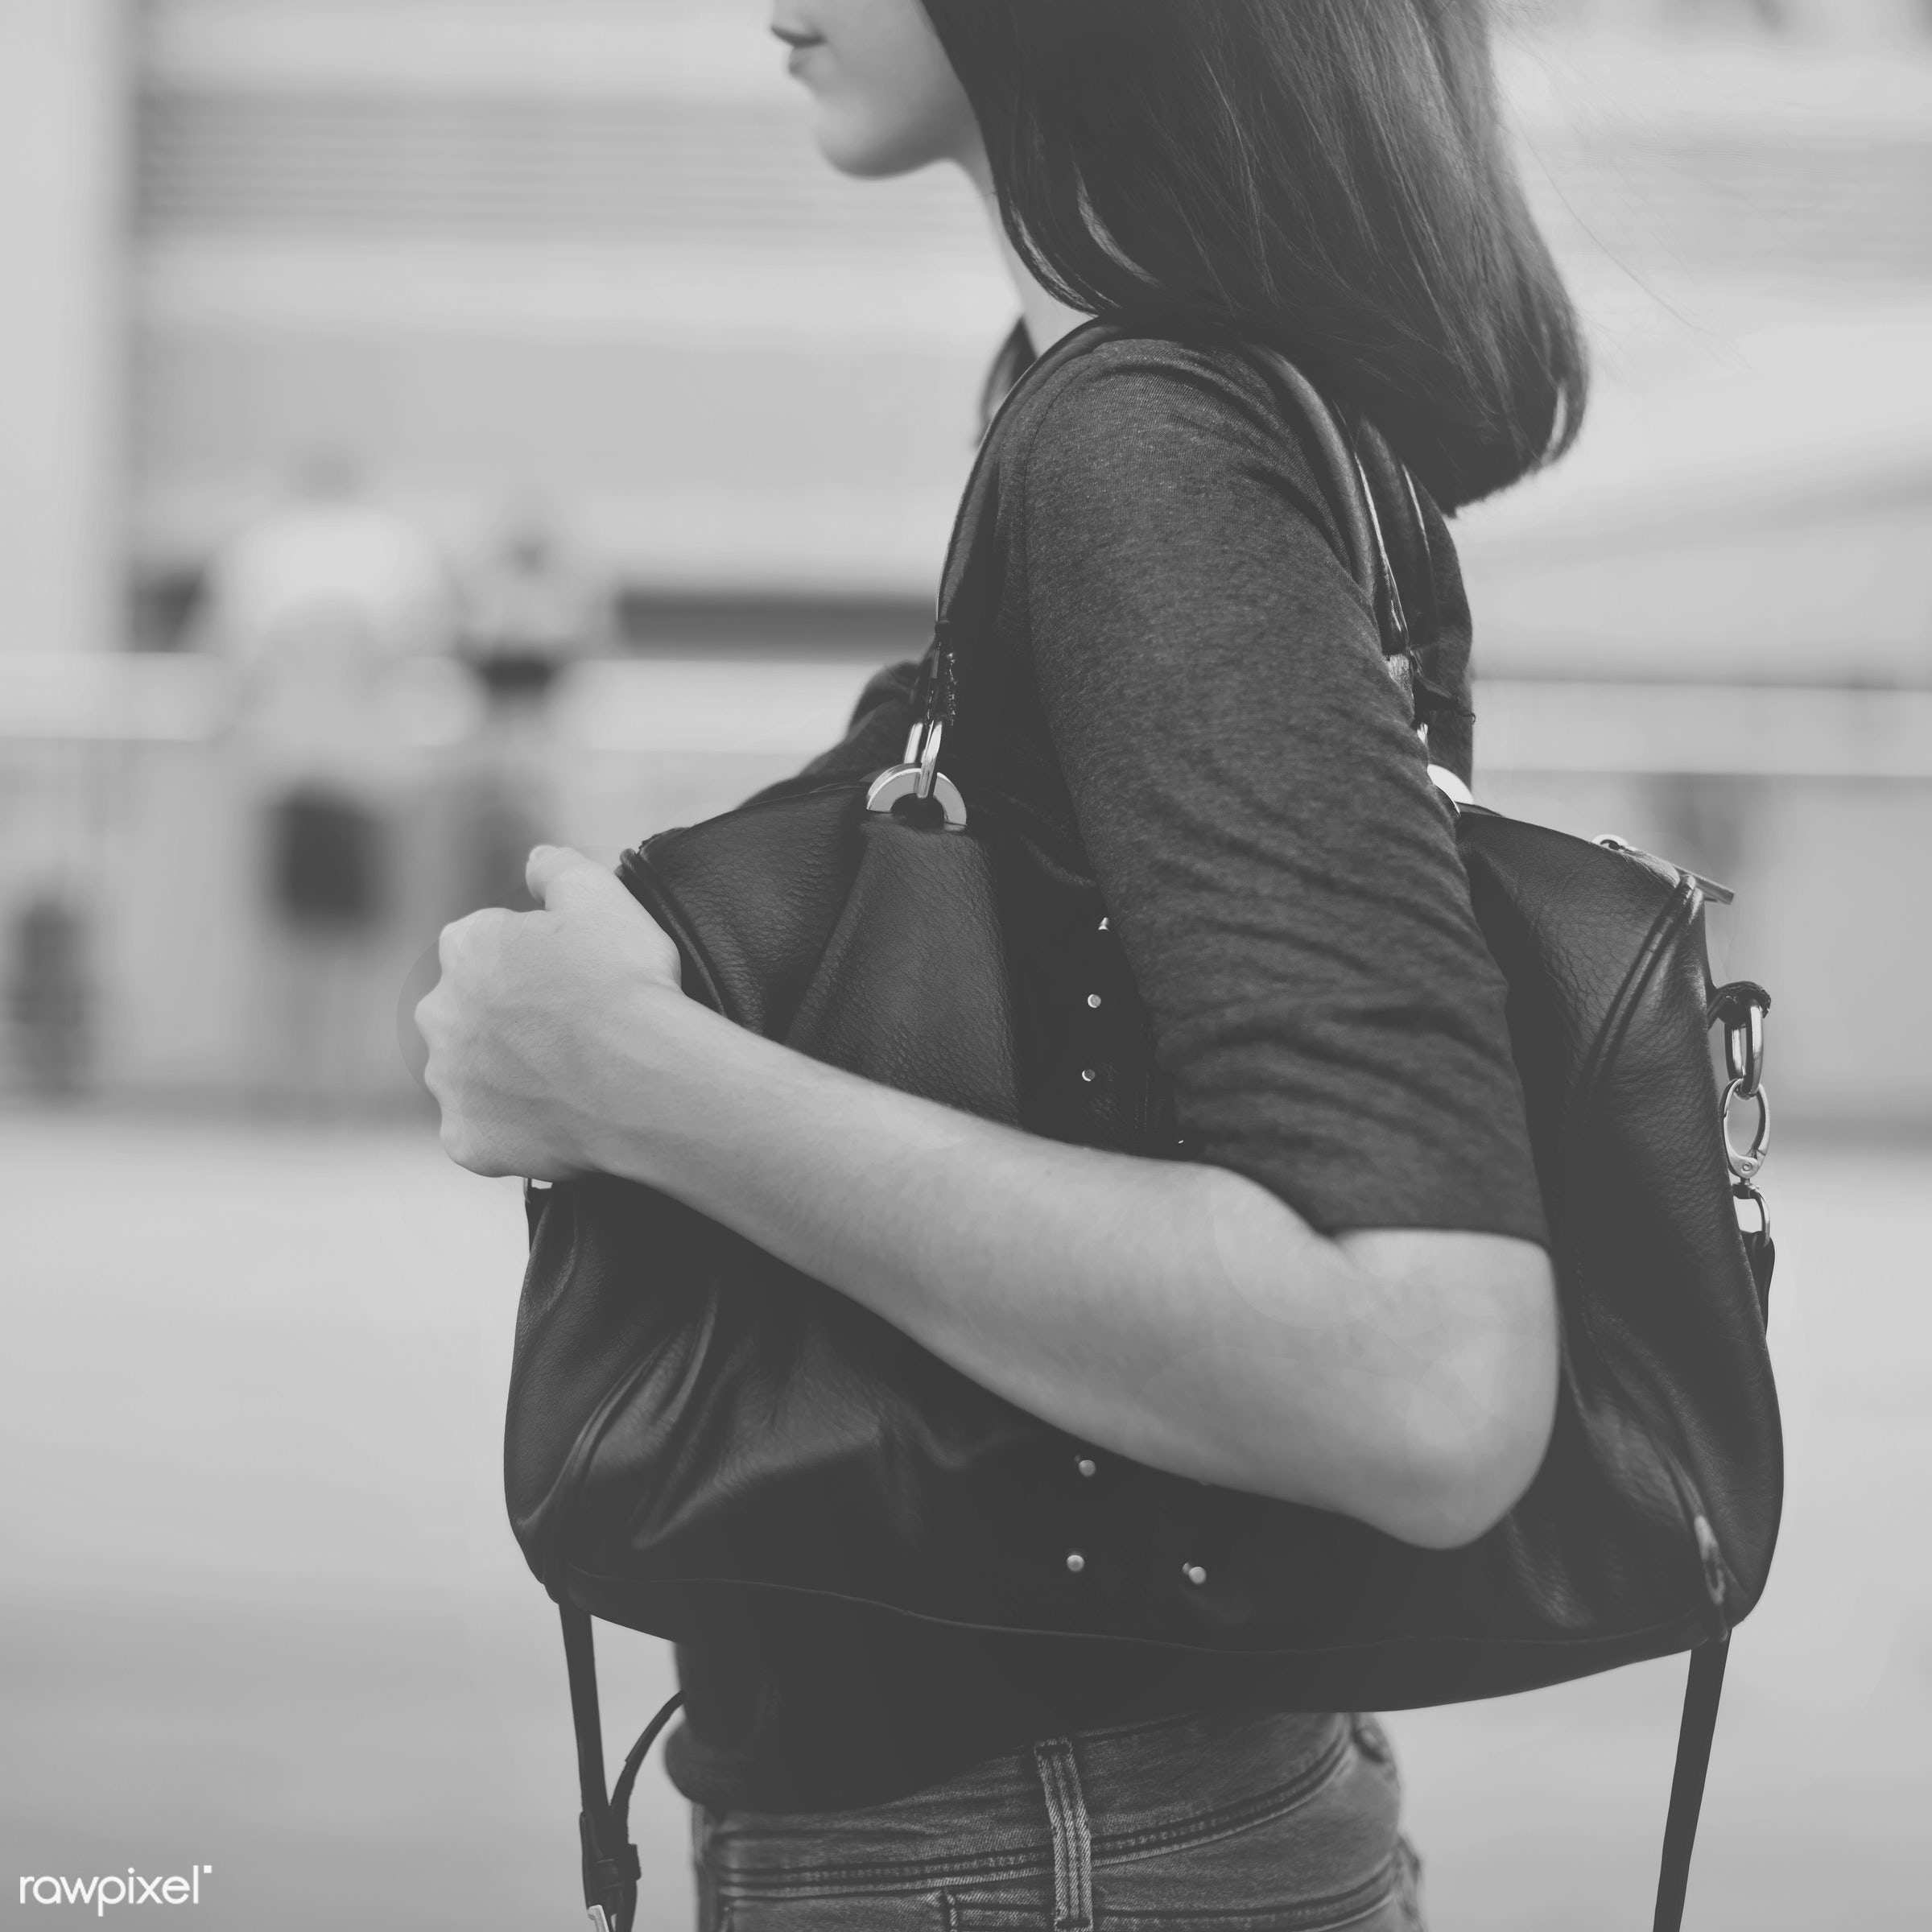 activity, adult, bag, casual, chilling, city, city life, cityscape, commuter, commuting, connection, crowd, downtown,...